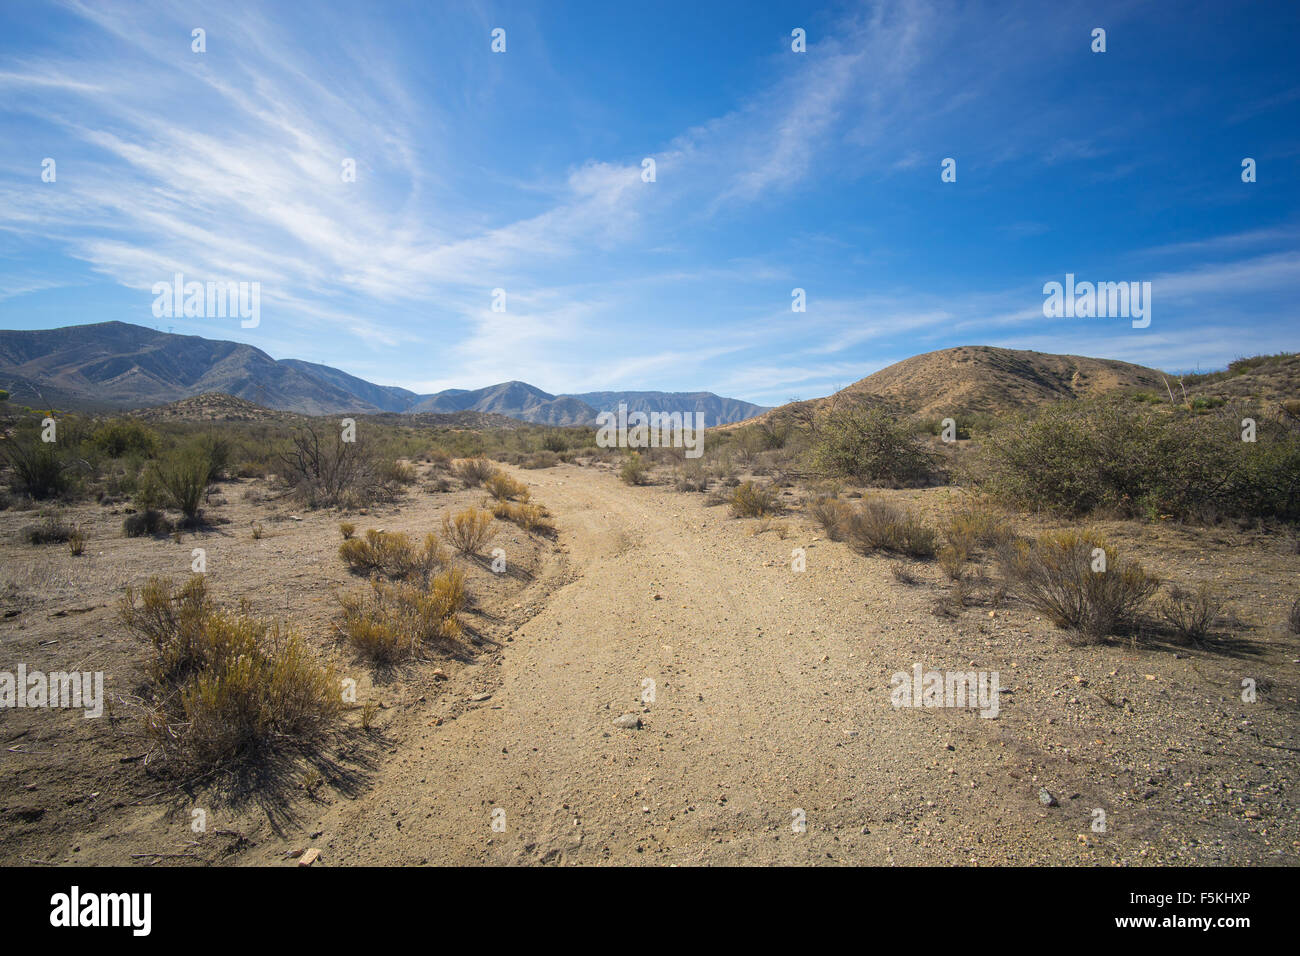 Dirt road in the wilds of the Mojave desert wilderness of Southern California. - Stock Image